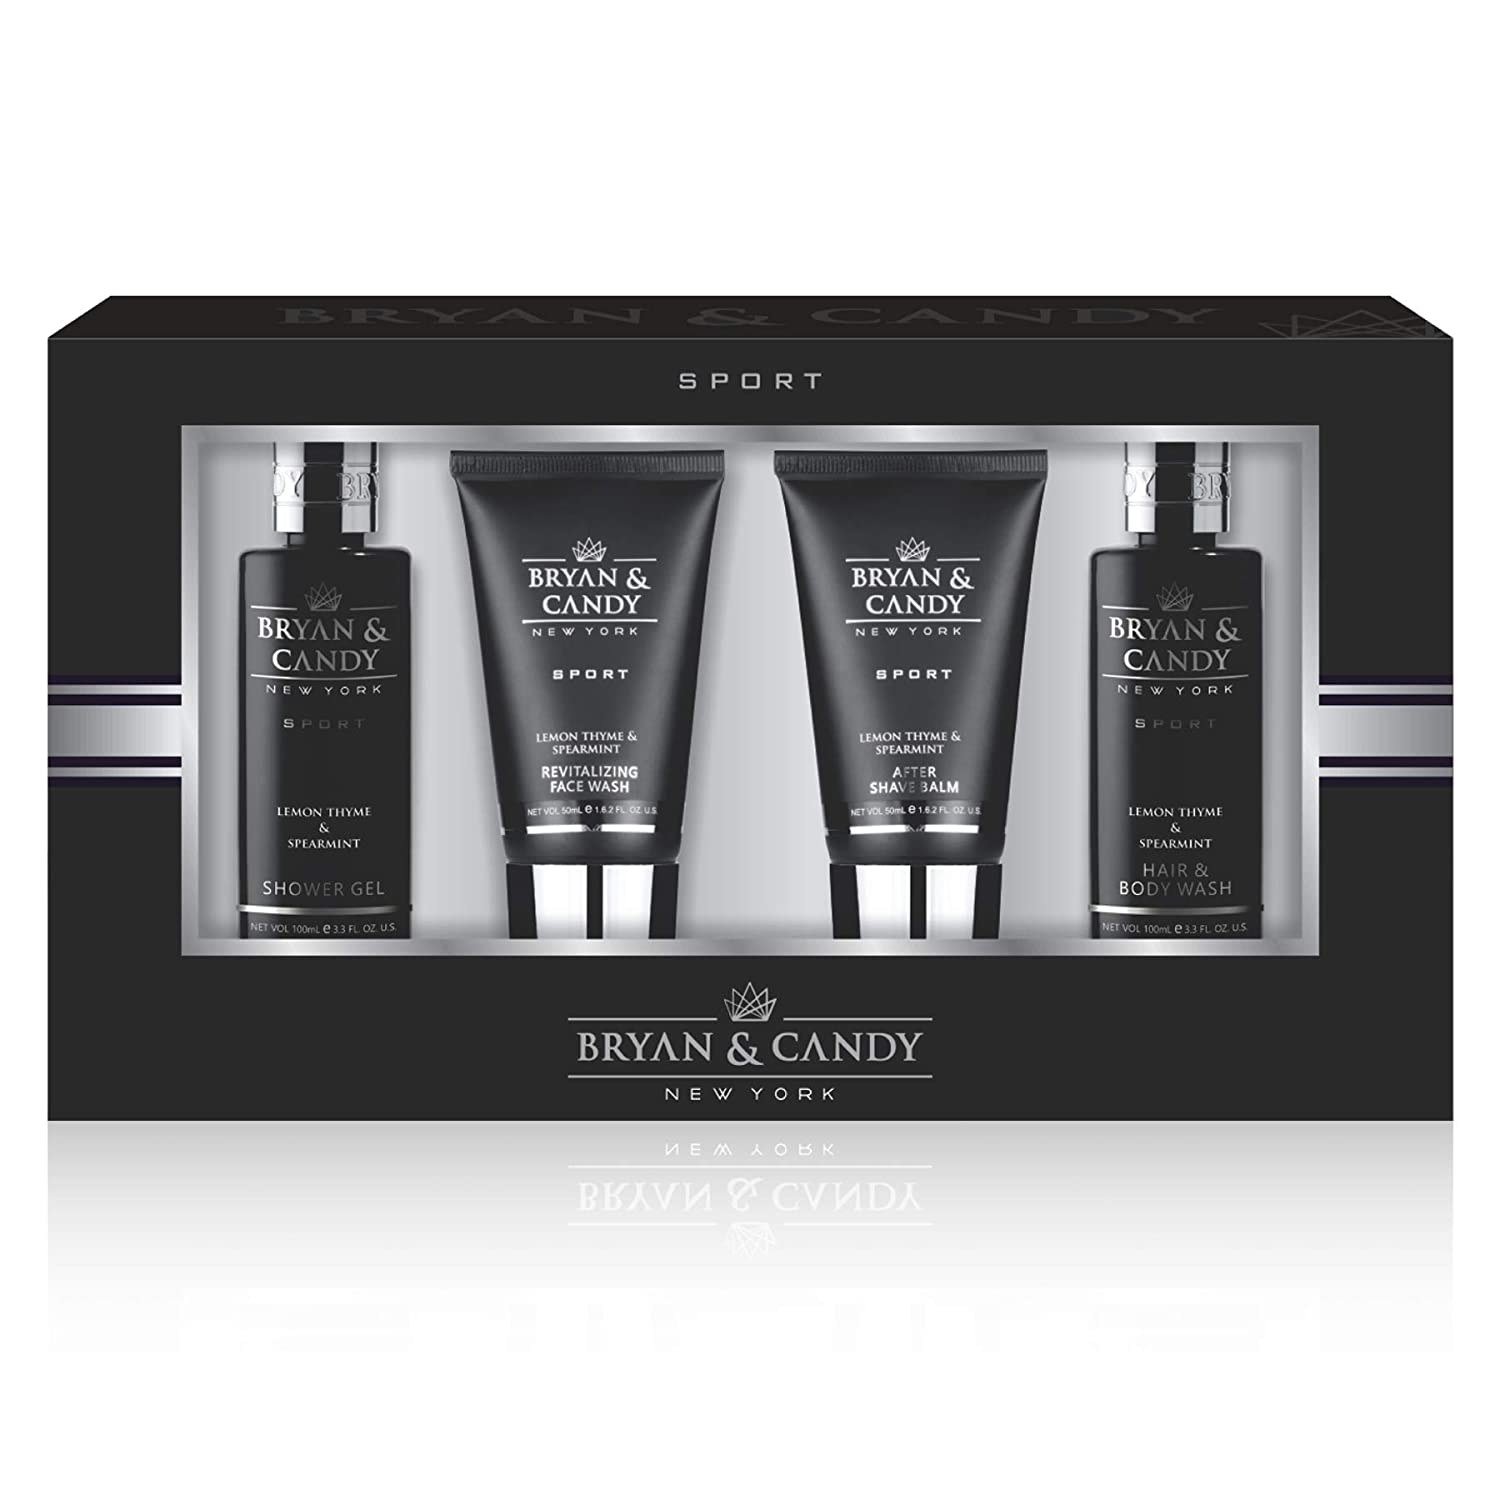 A shower kit that includes a shower gel, a face wash, after-shave balm and shampoo in sleek black tubes and bottles.